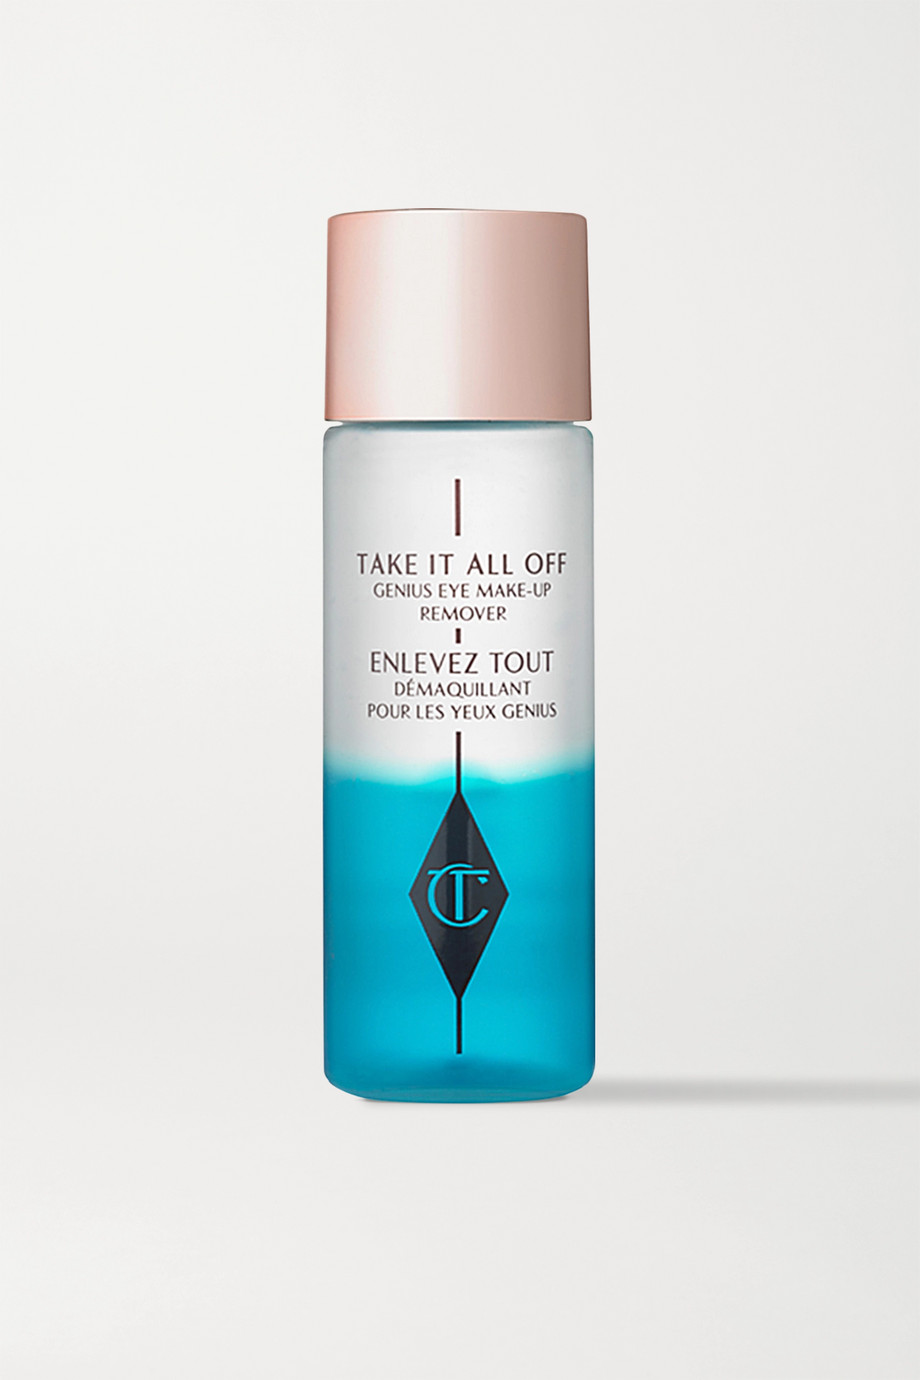 CHARLOTTE TILBURY Take It All Off Genius Eye Make-Up Remover, 30ml